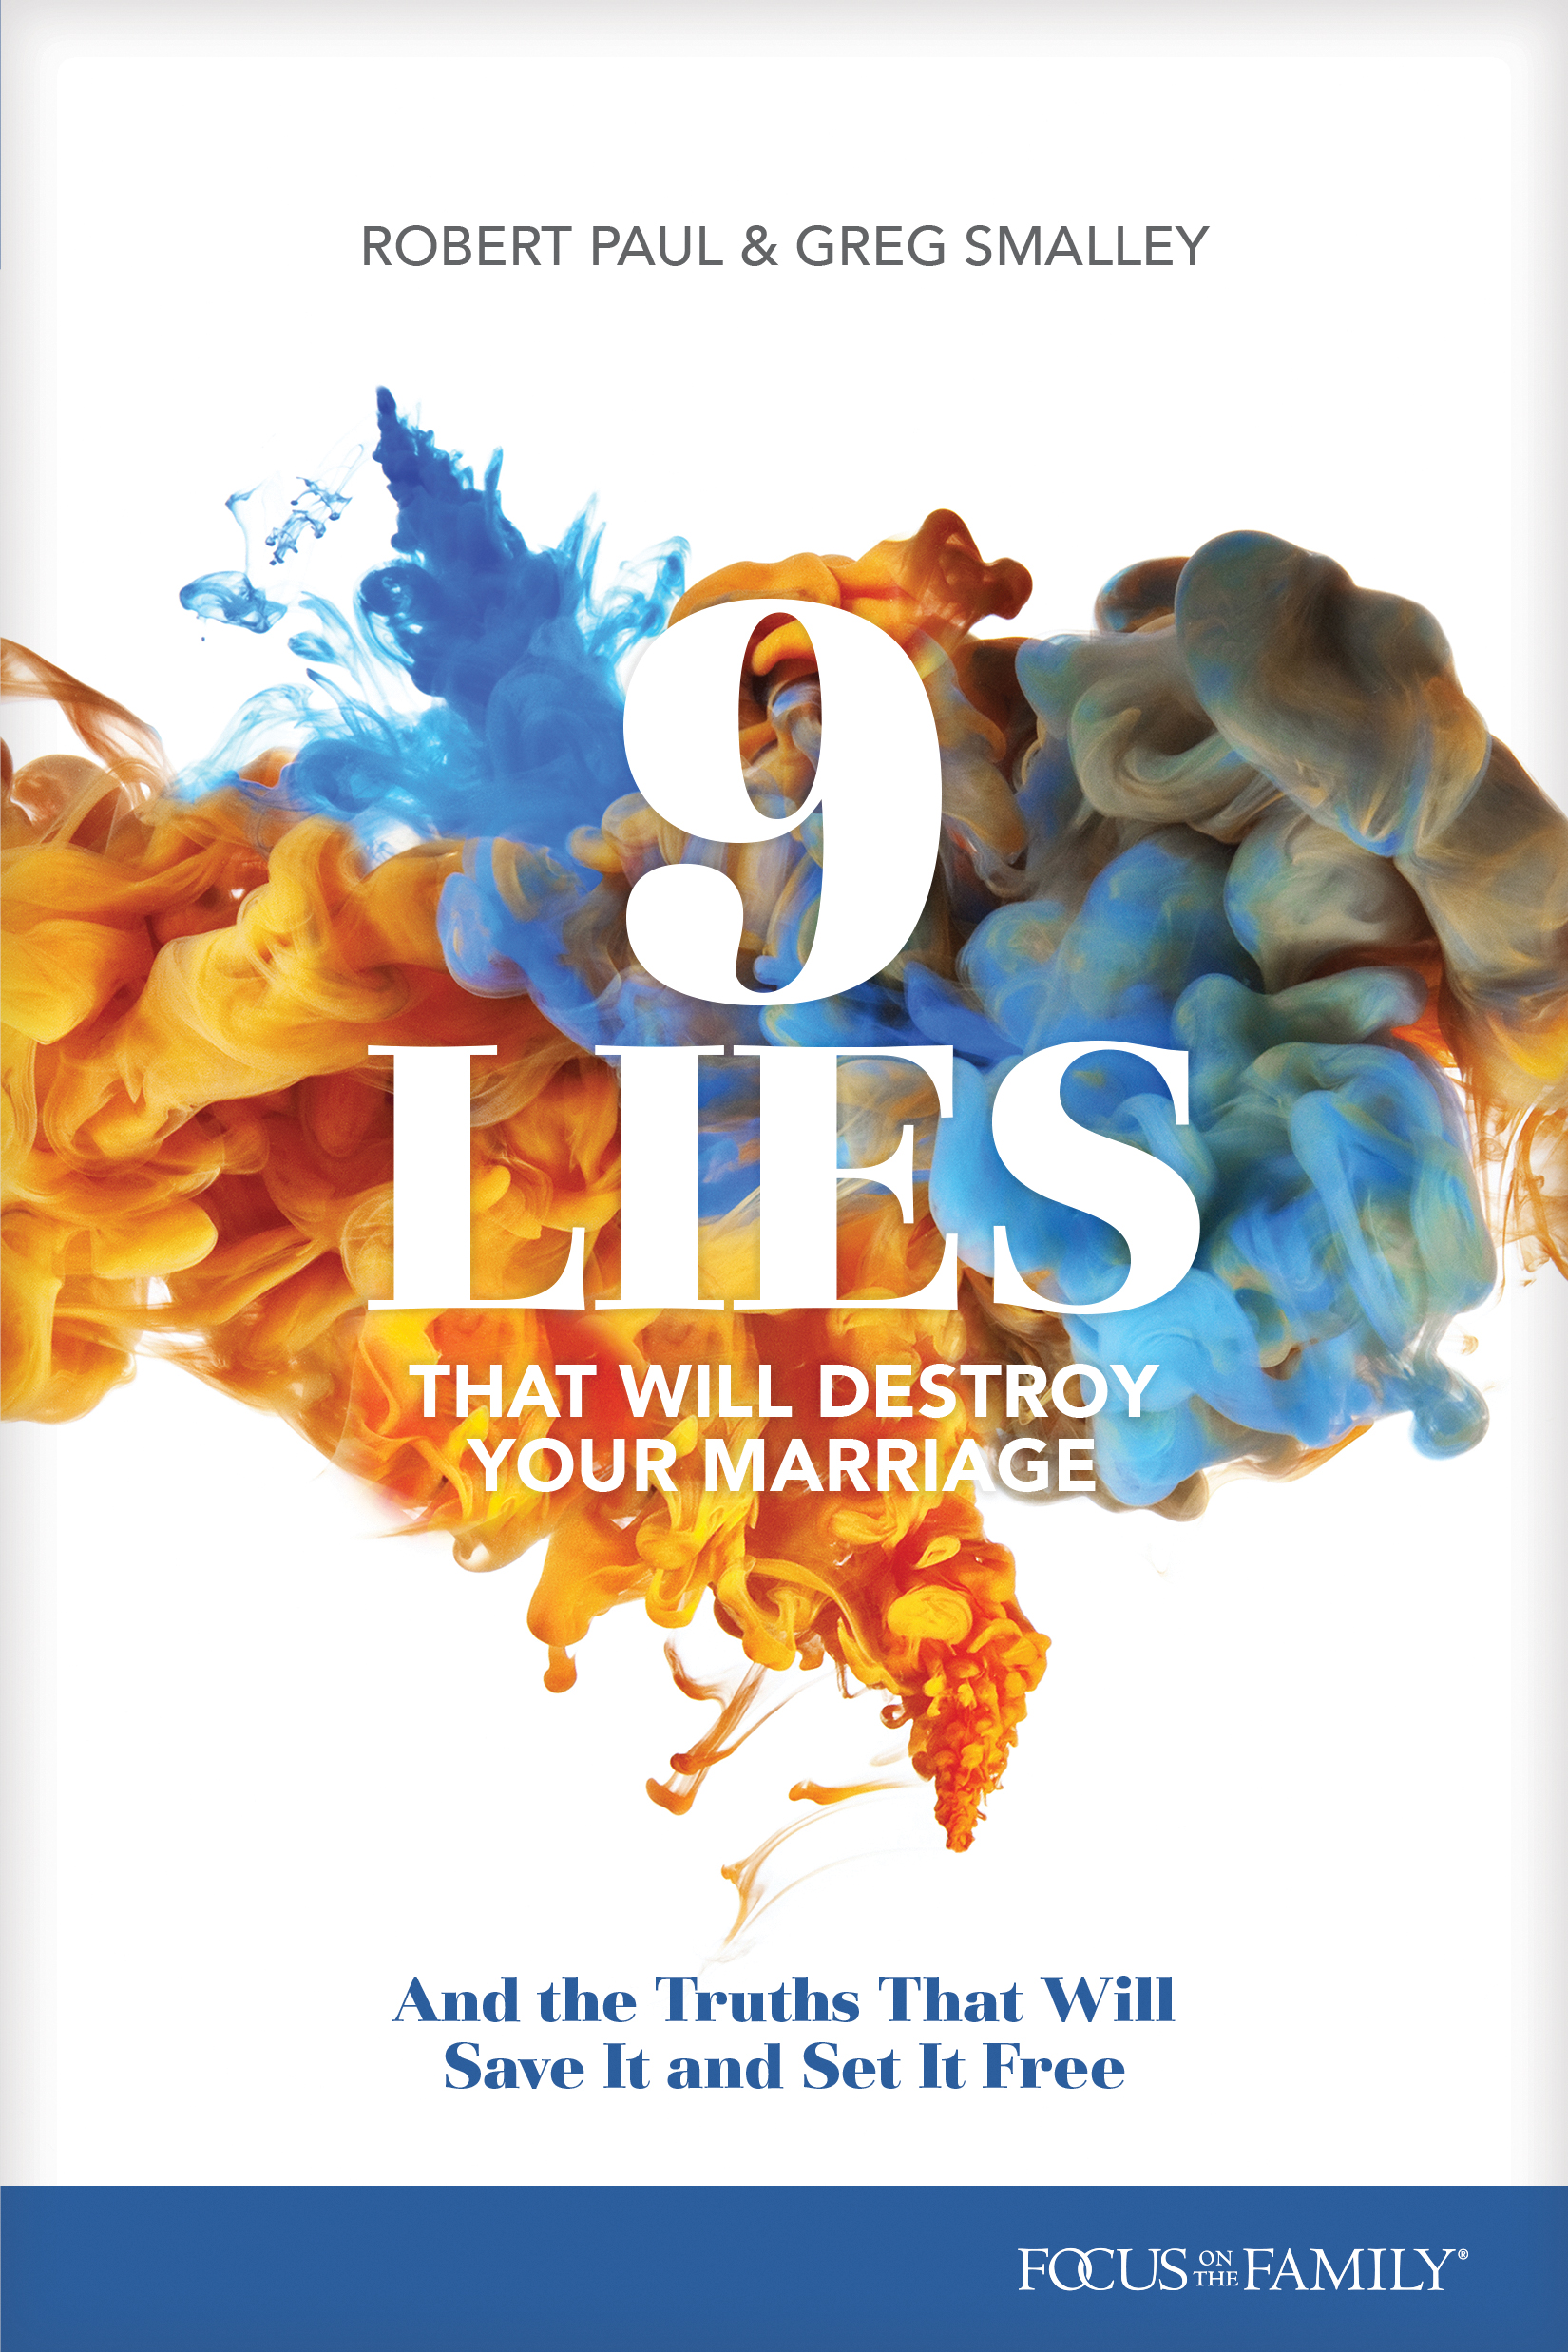 9 Lies That Will Destroy Your Marriage